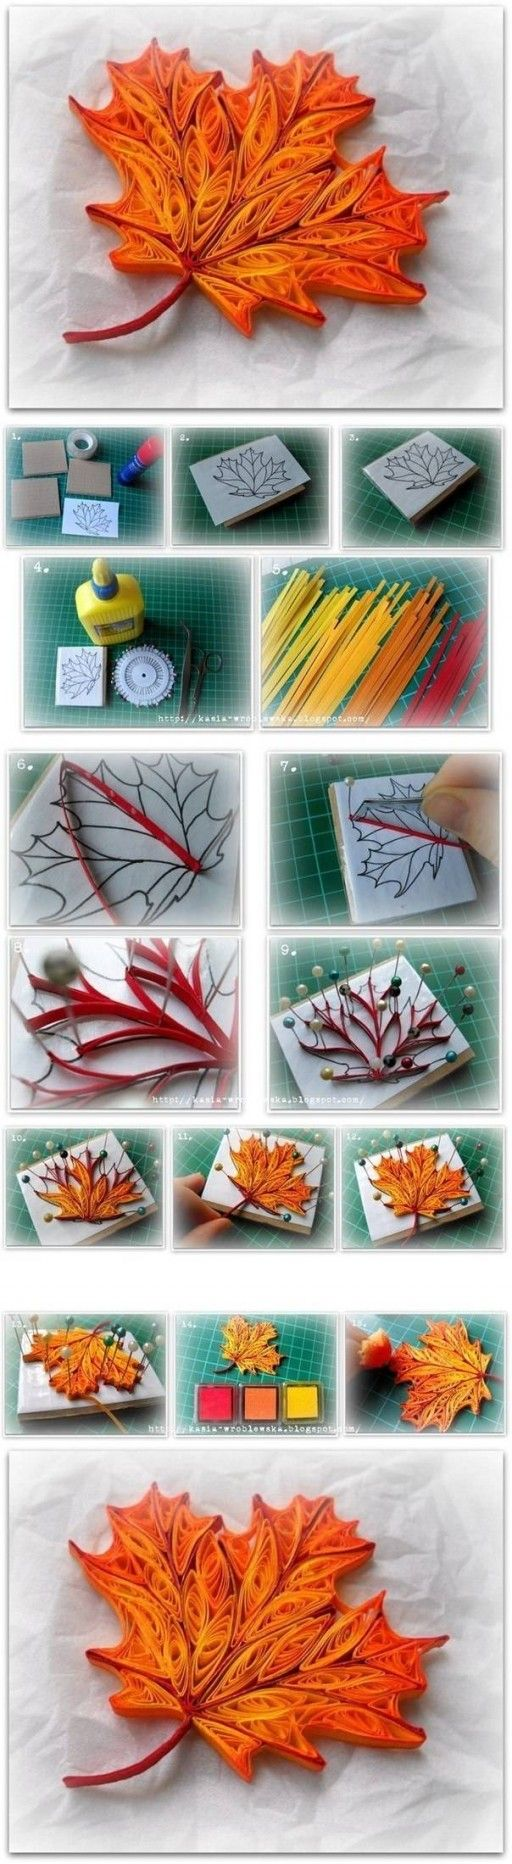 How to make quilled maple leaf step by step diy tutorial for Easy quilling designs step by step